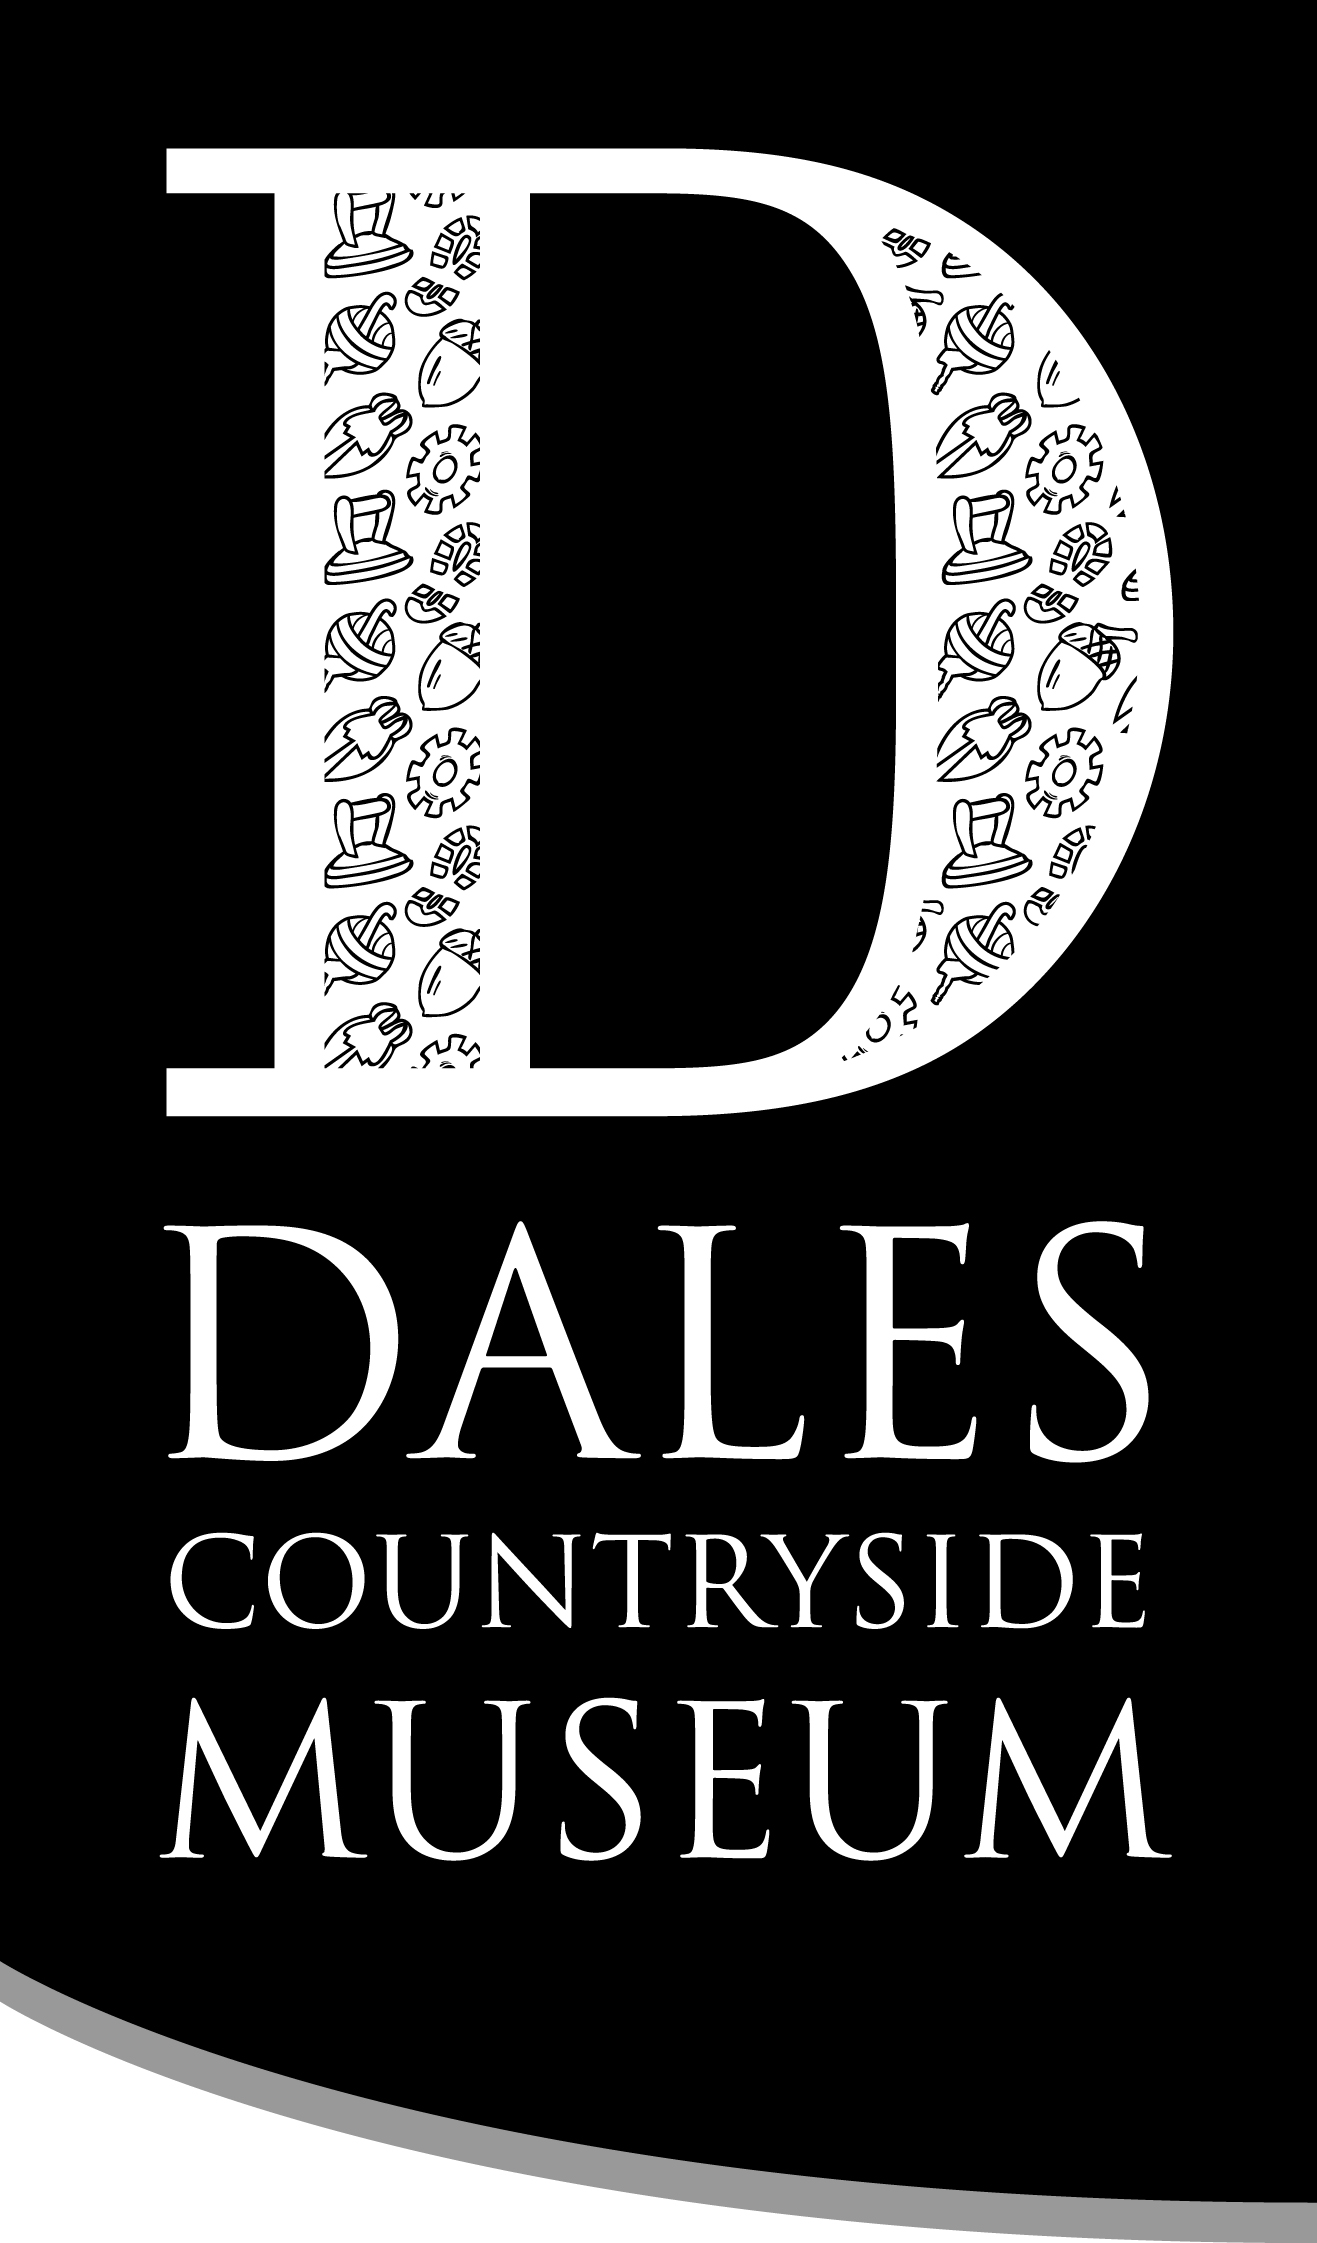 Yorkshire Dales Museum Craft Courses and Workshops